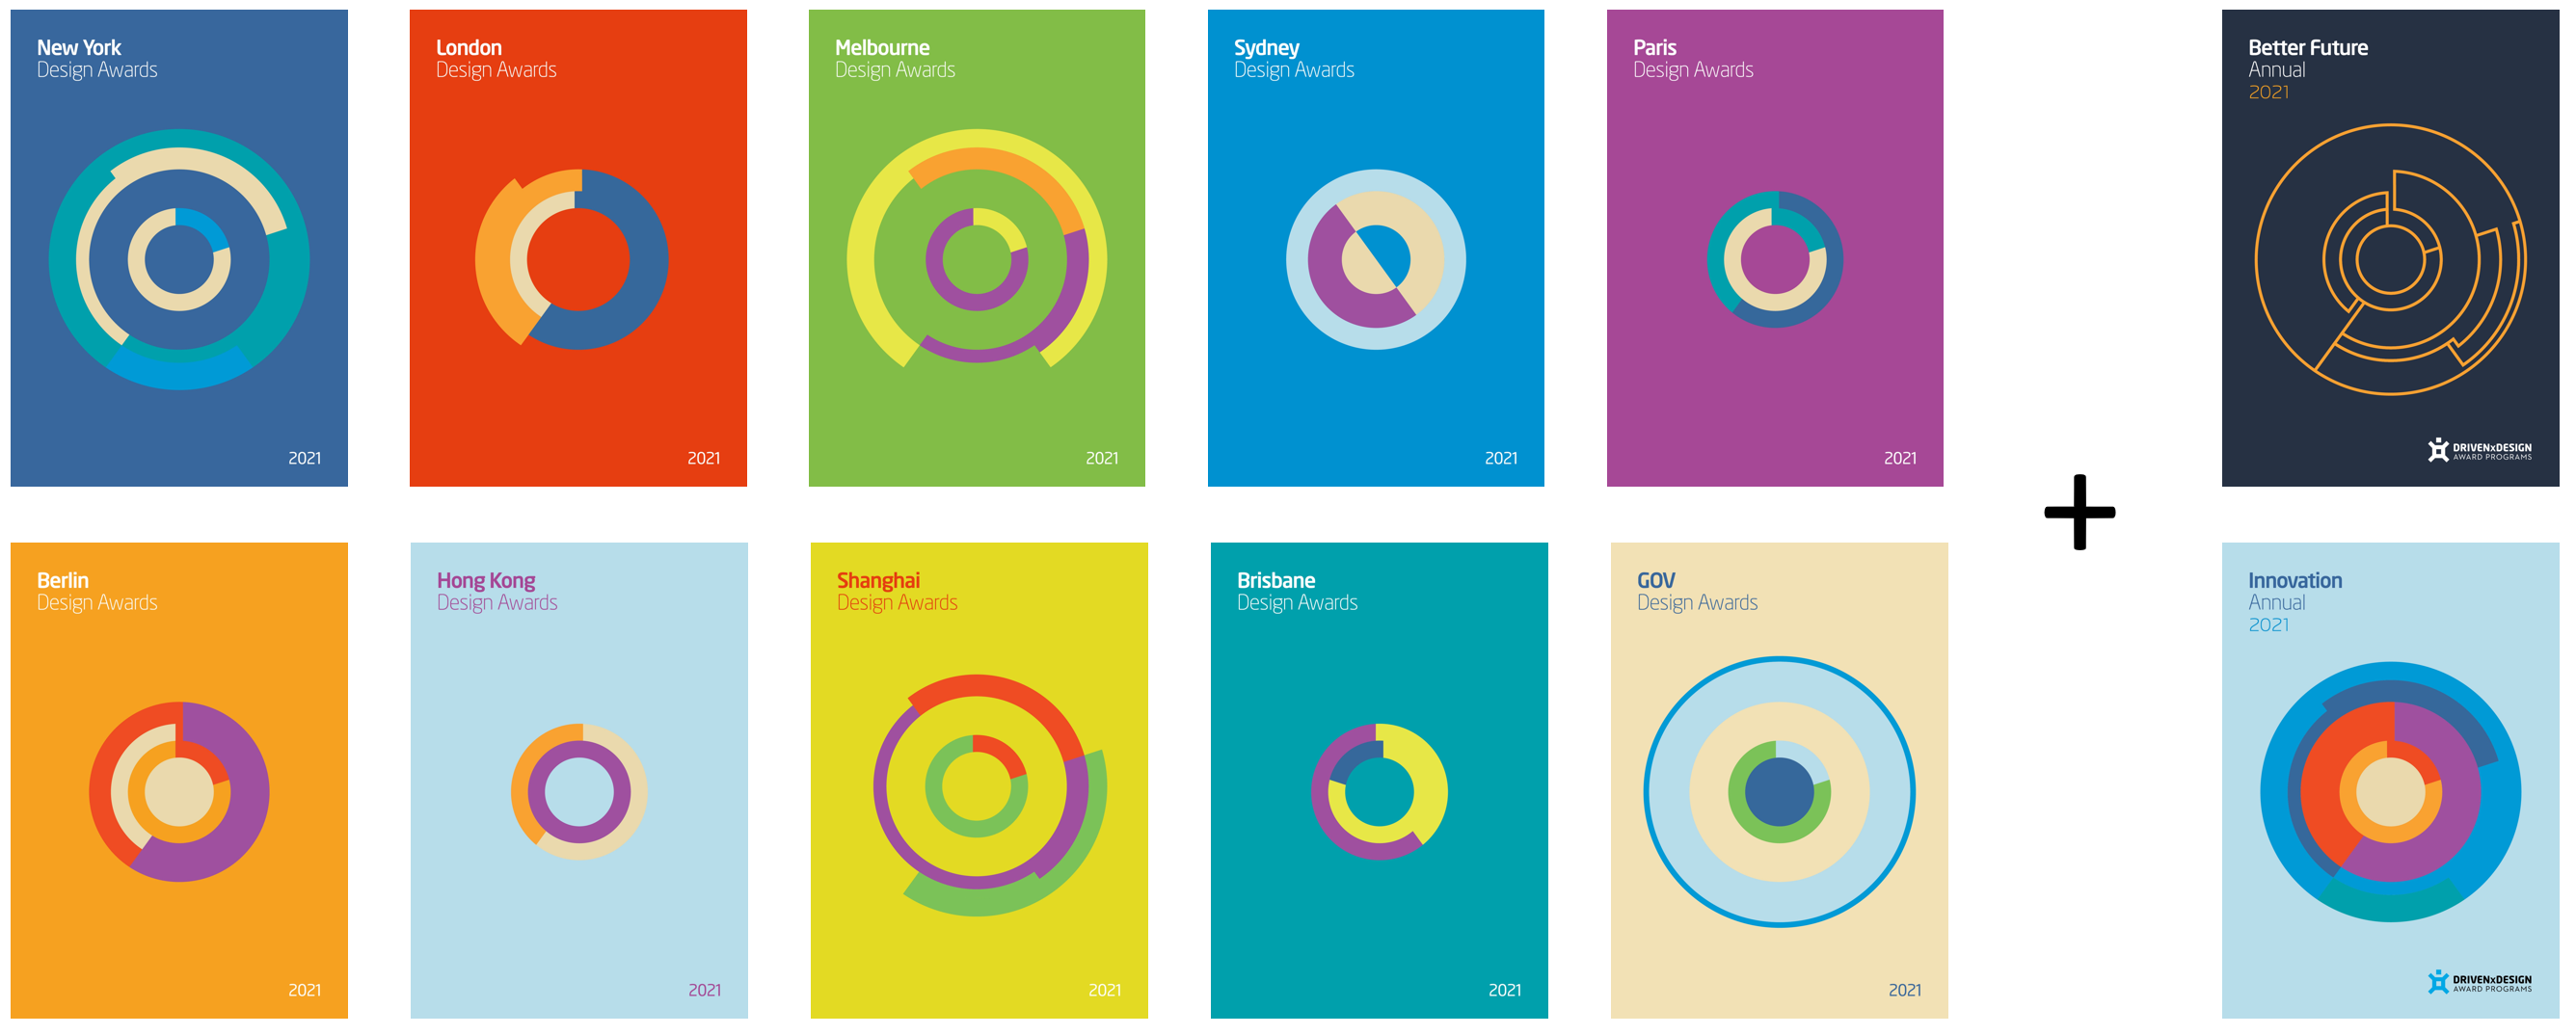 DRIVENxDESIGN Award Annuals